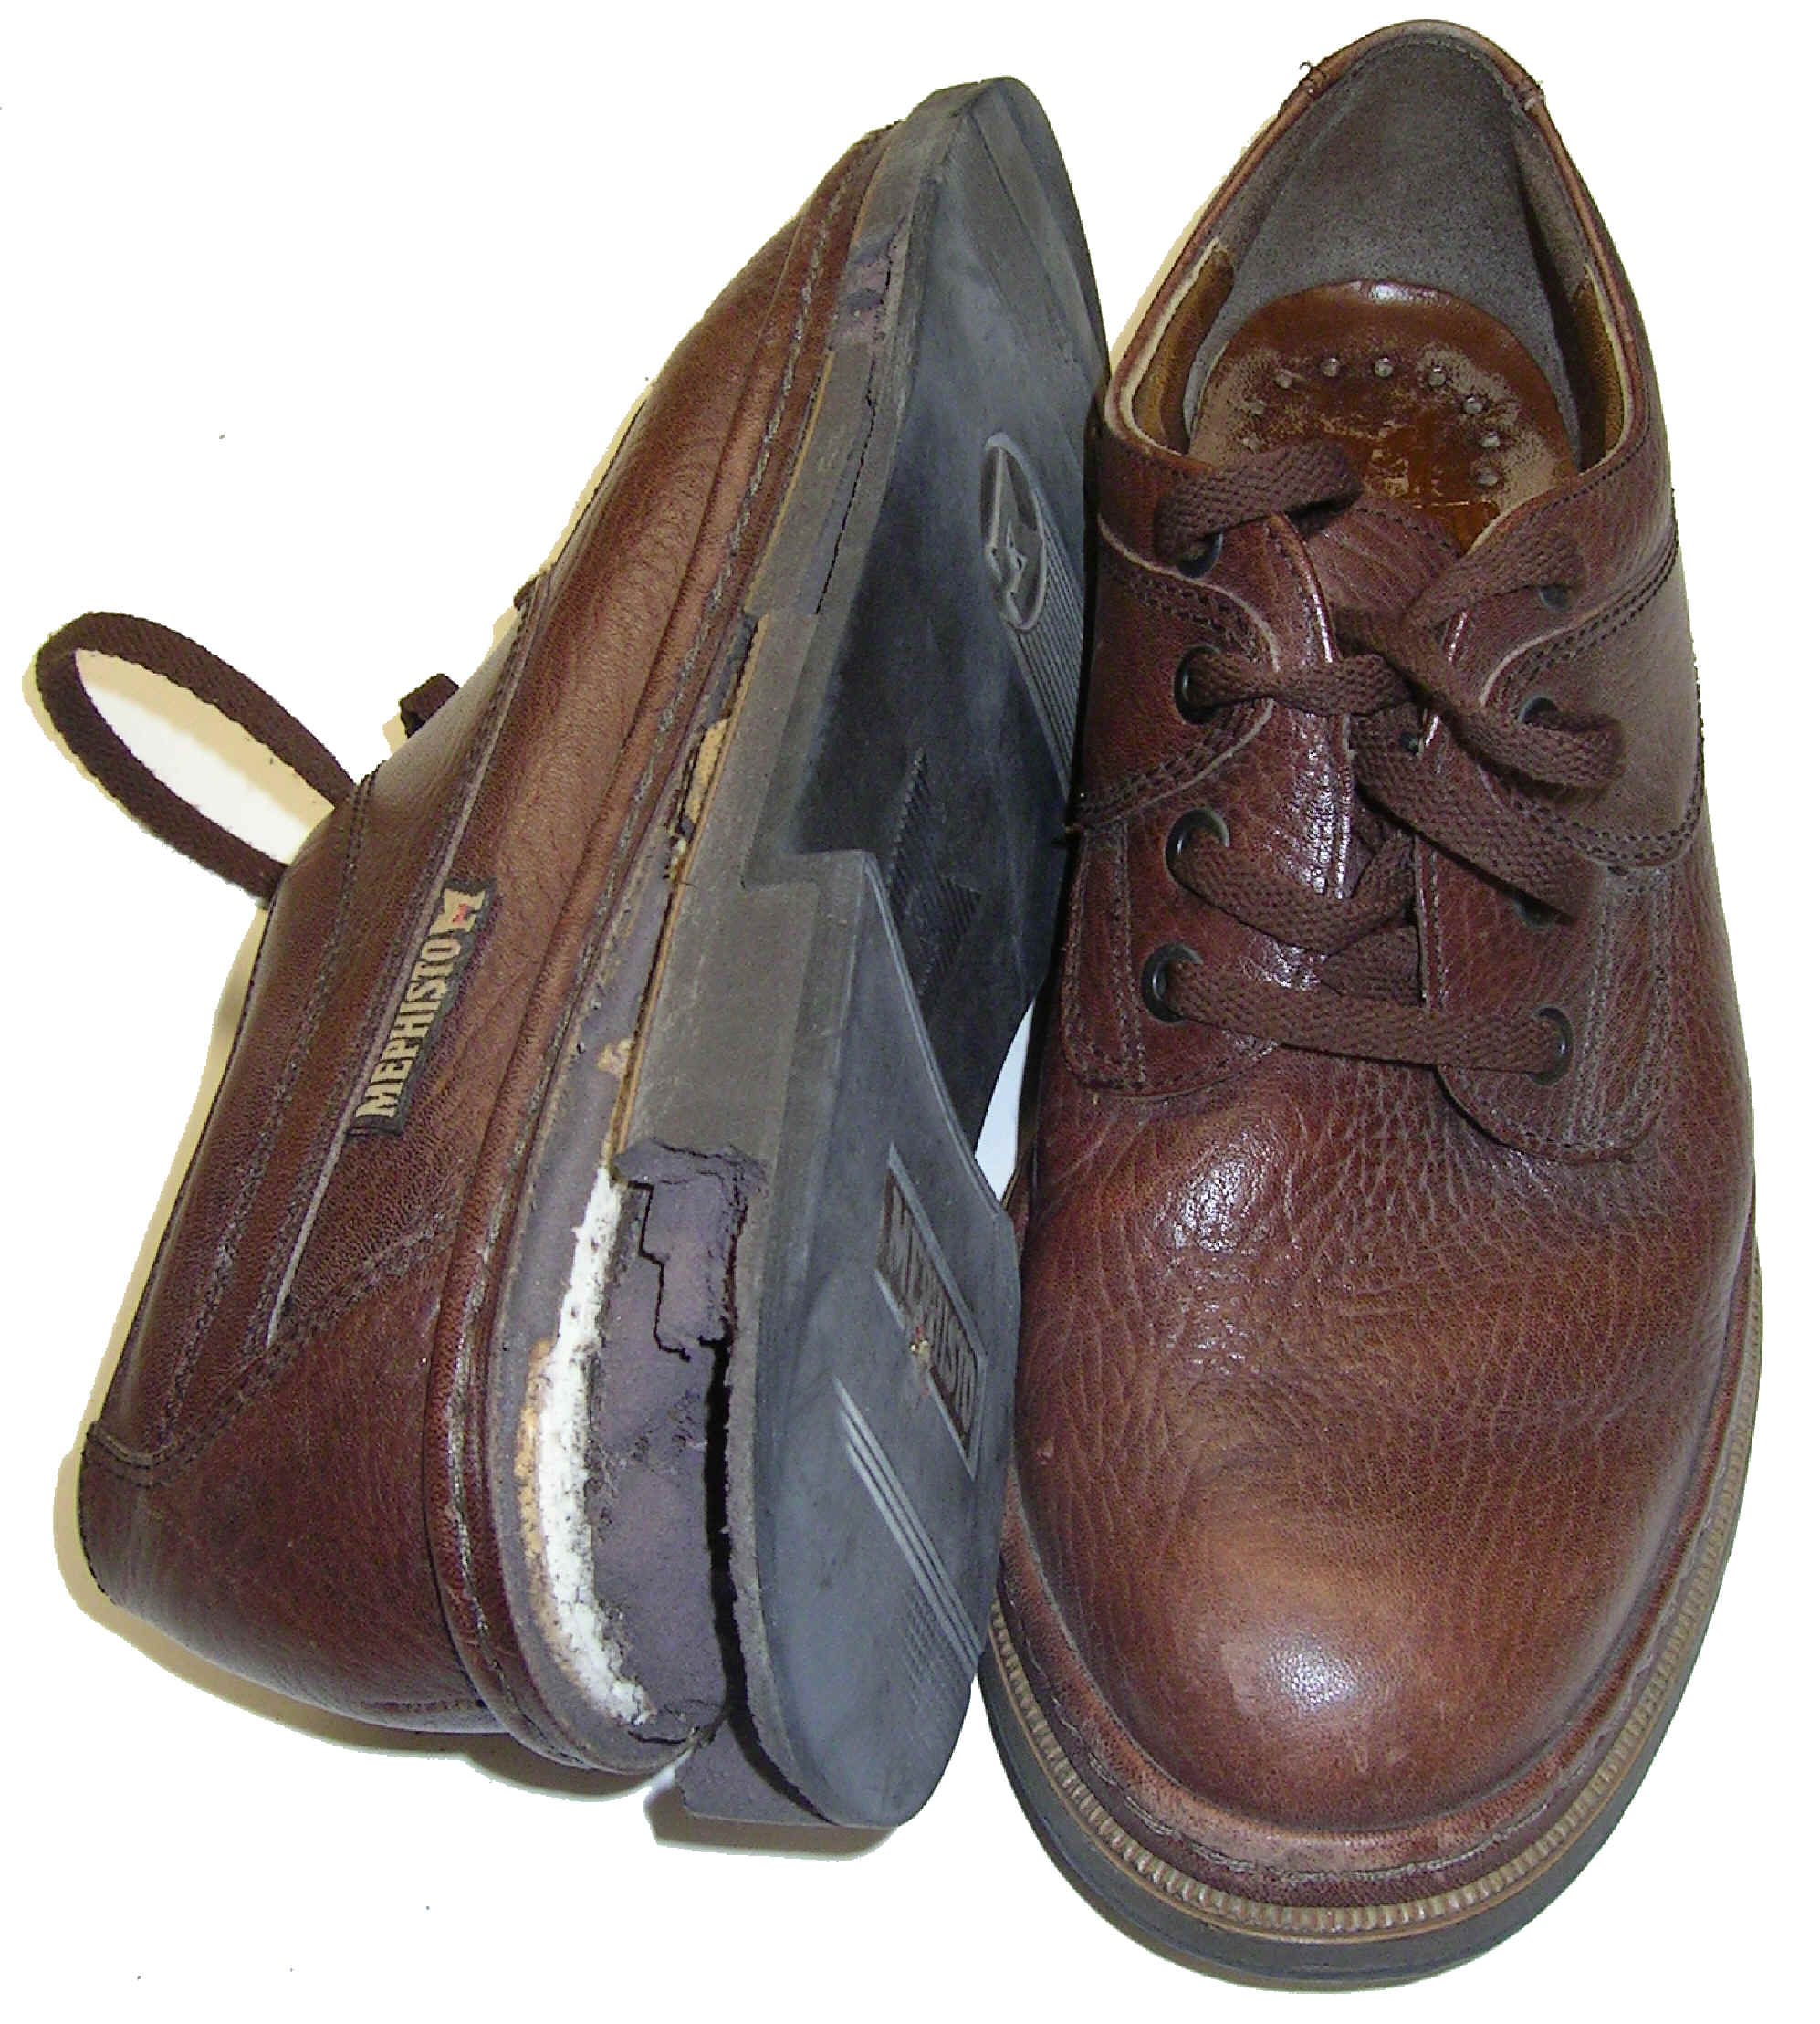 How Much To Resole Dress Shoes